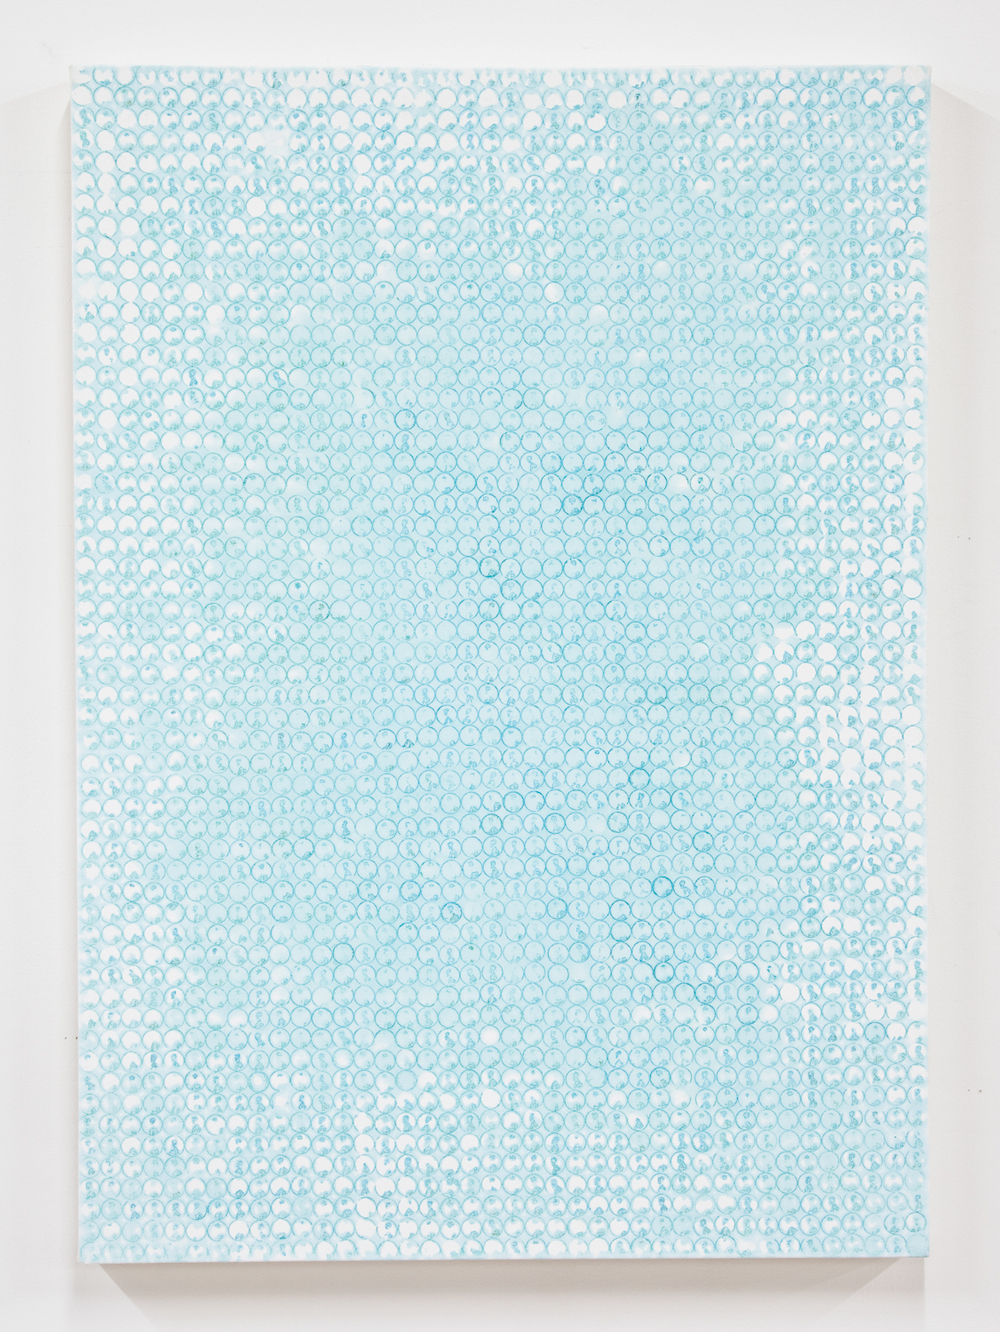 Nick Darmstaedter   Henne  2012  Oxidized copper on canvas  42 x 30 inches